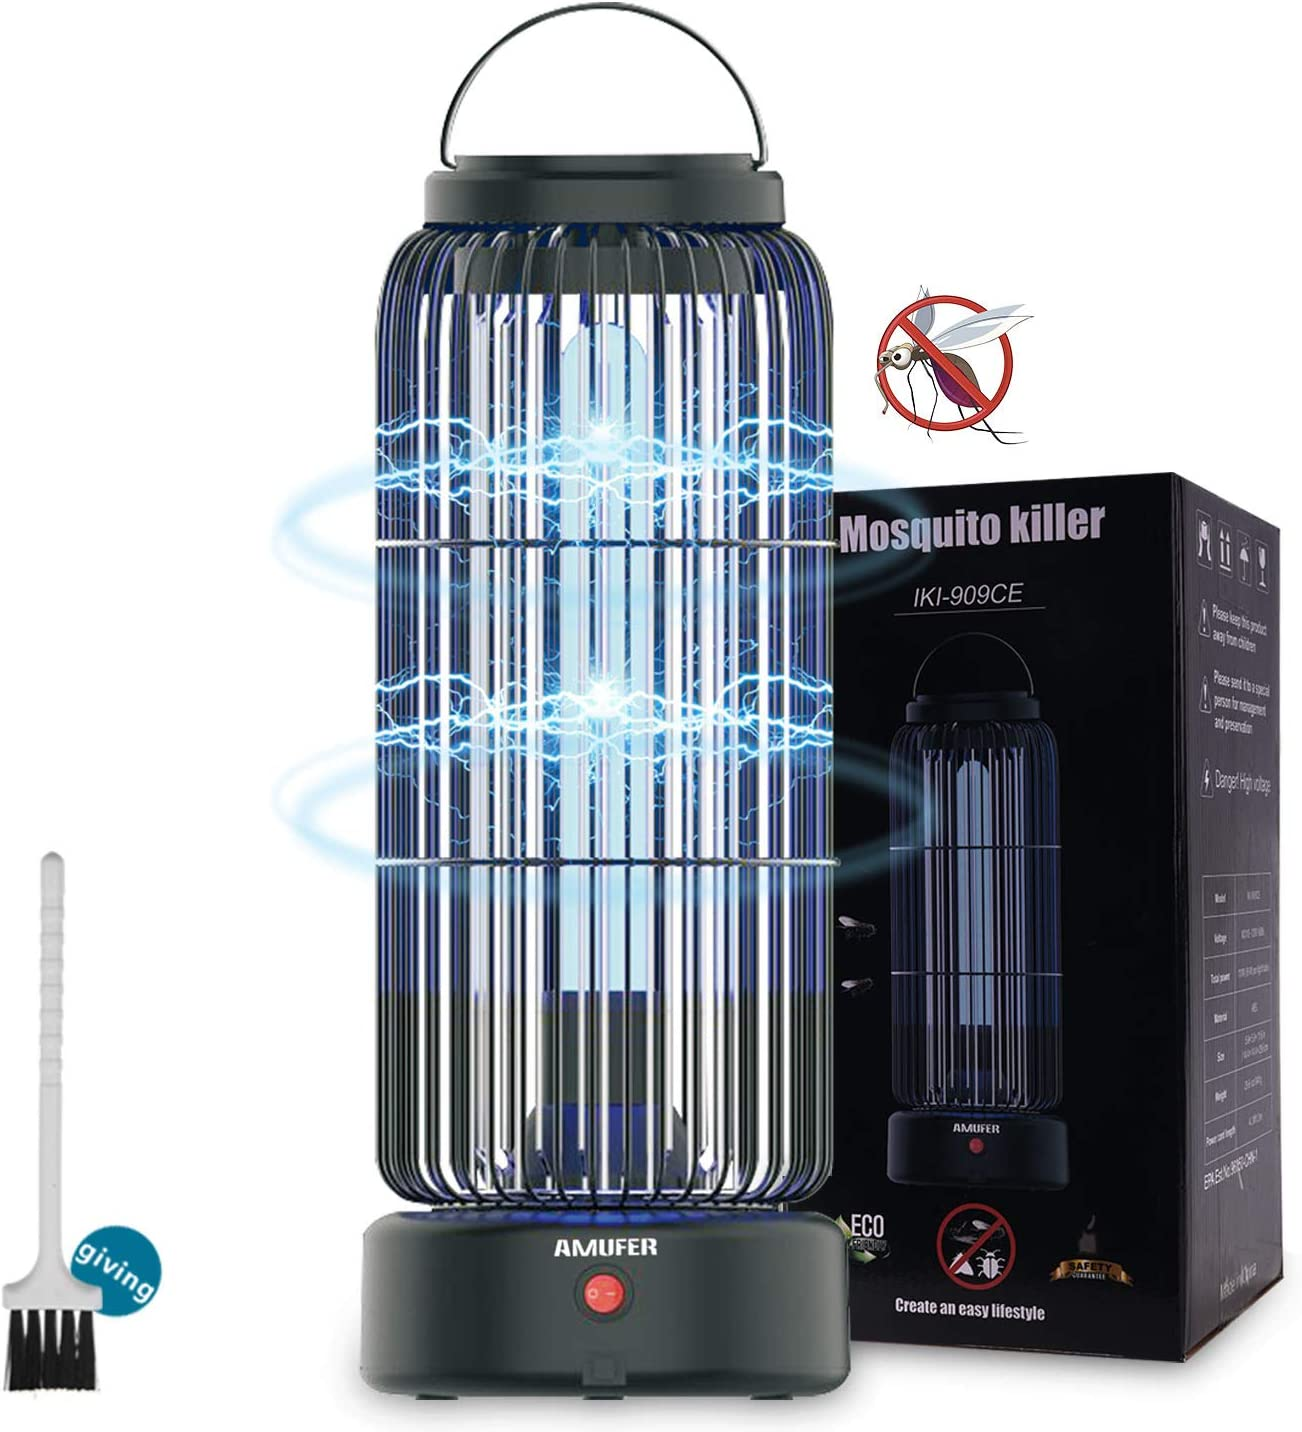 AMUFER Electric Bug Zapper High Powered Mosquito Killer with 11W Fly Insect Trap Lamp Bulb, Portable Hanging Pest Control 430sq.Ft Coverage for Indoor, Home, Bedroom, Kitchen, Office